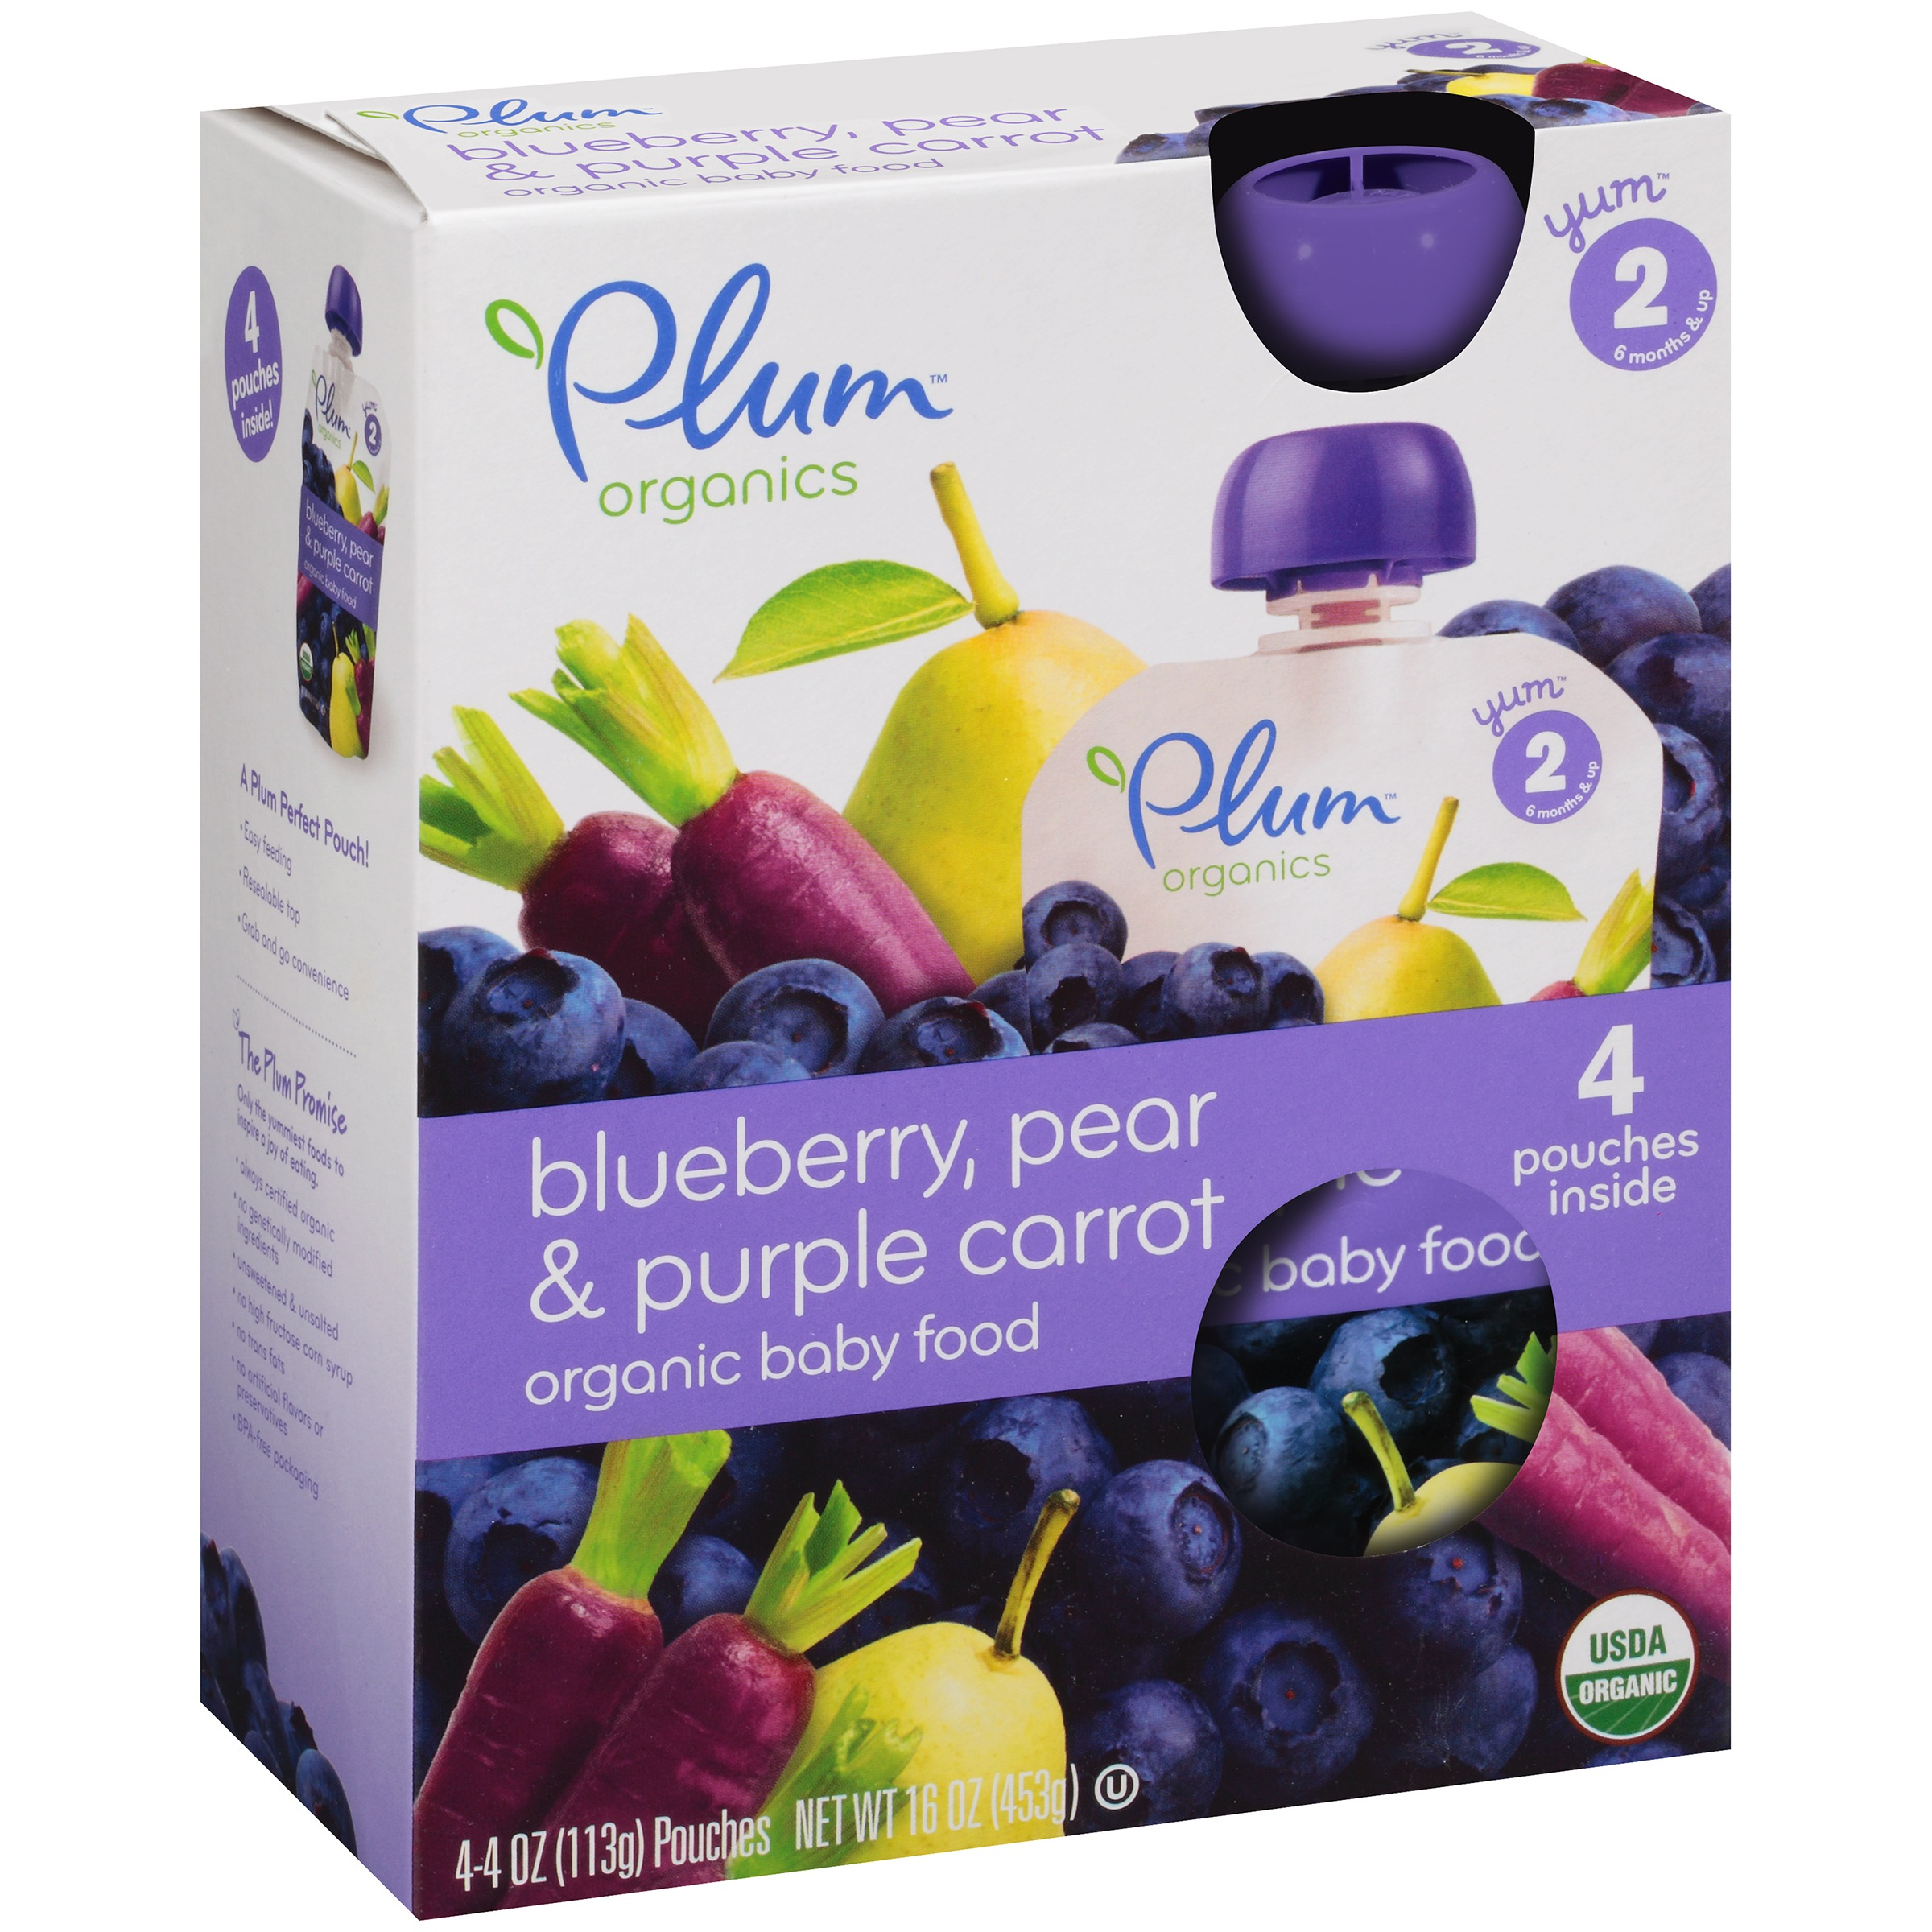 Plum Organics Stage 2 Blueberry, Pear & Purple Carrot Organic Baby Food 4-4 oz. Pouches